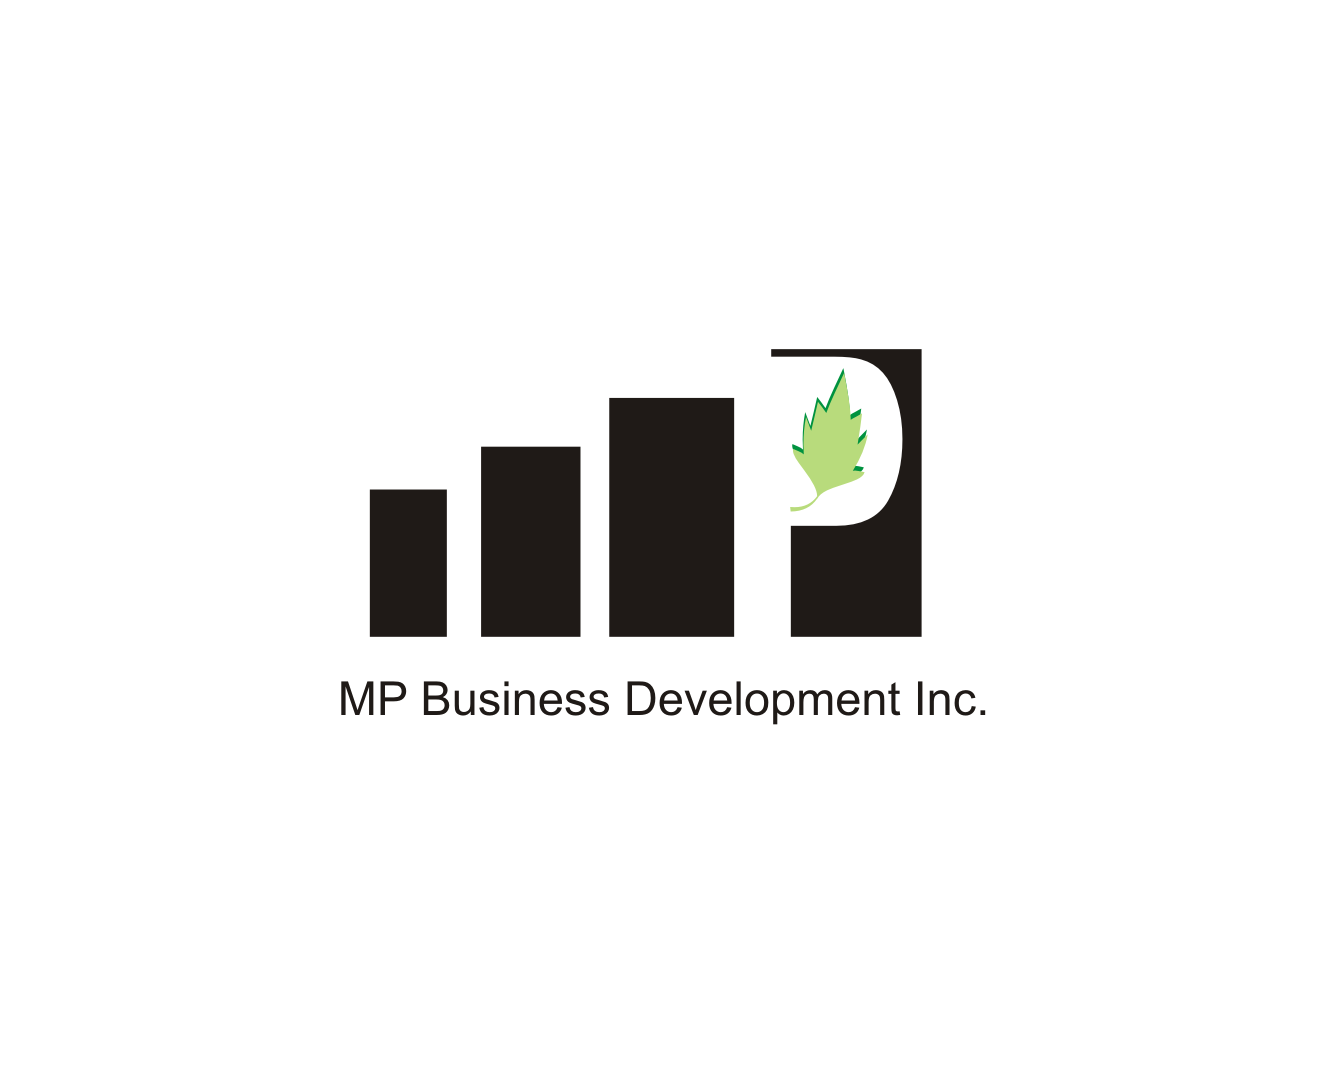 Logo Design by Nthus Nthis - Entry No. 15 in the Logo Design Contest MP Business Development Inc. Logo Design.